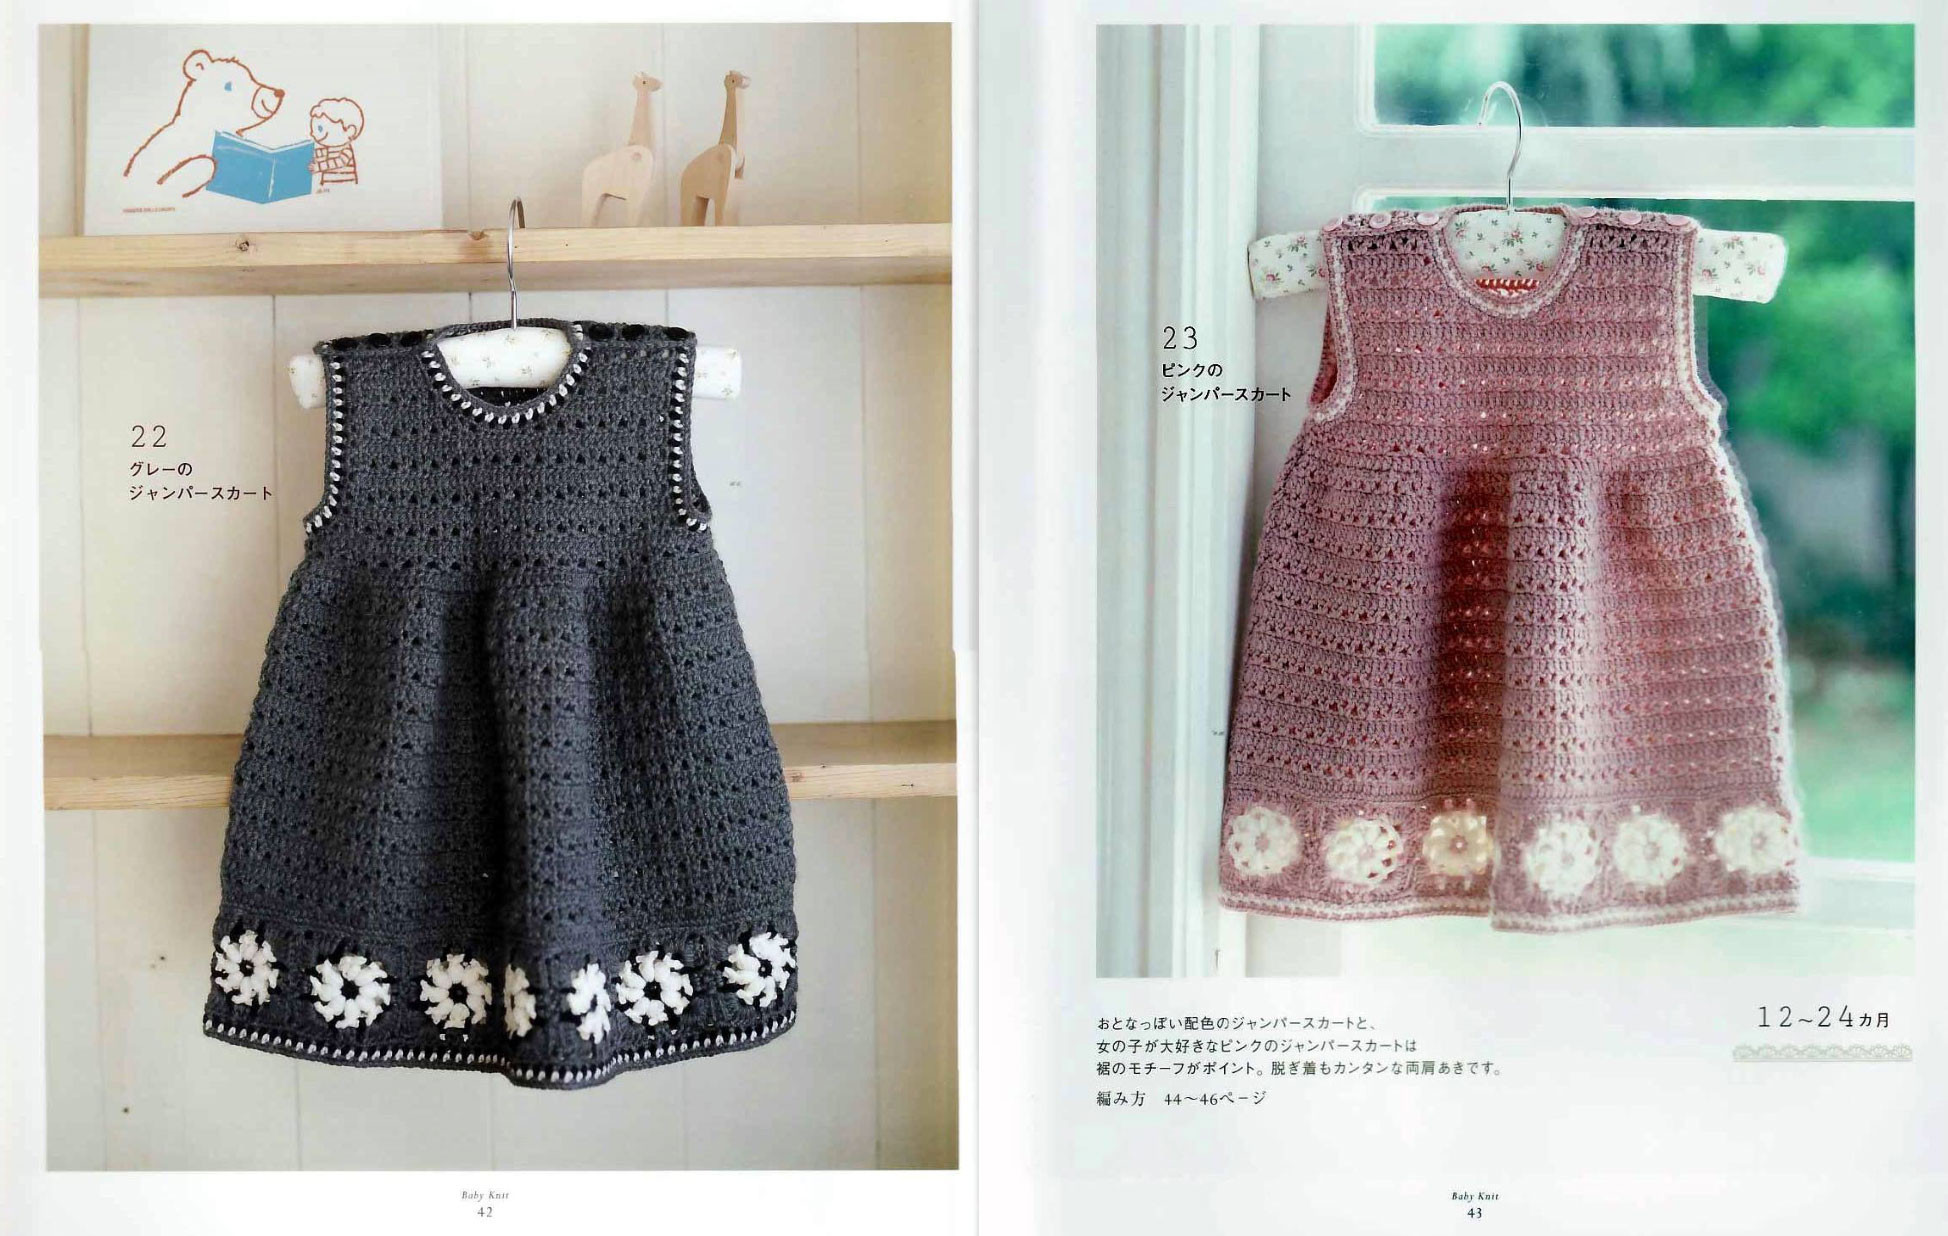 Beautiful Cute Japanese Baby Crochet Dress Pattern ⋆ Crochet Kingdom Crochet Girl Dress Of Awesome 46 Images Crochet Girl Dress